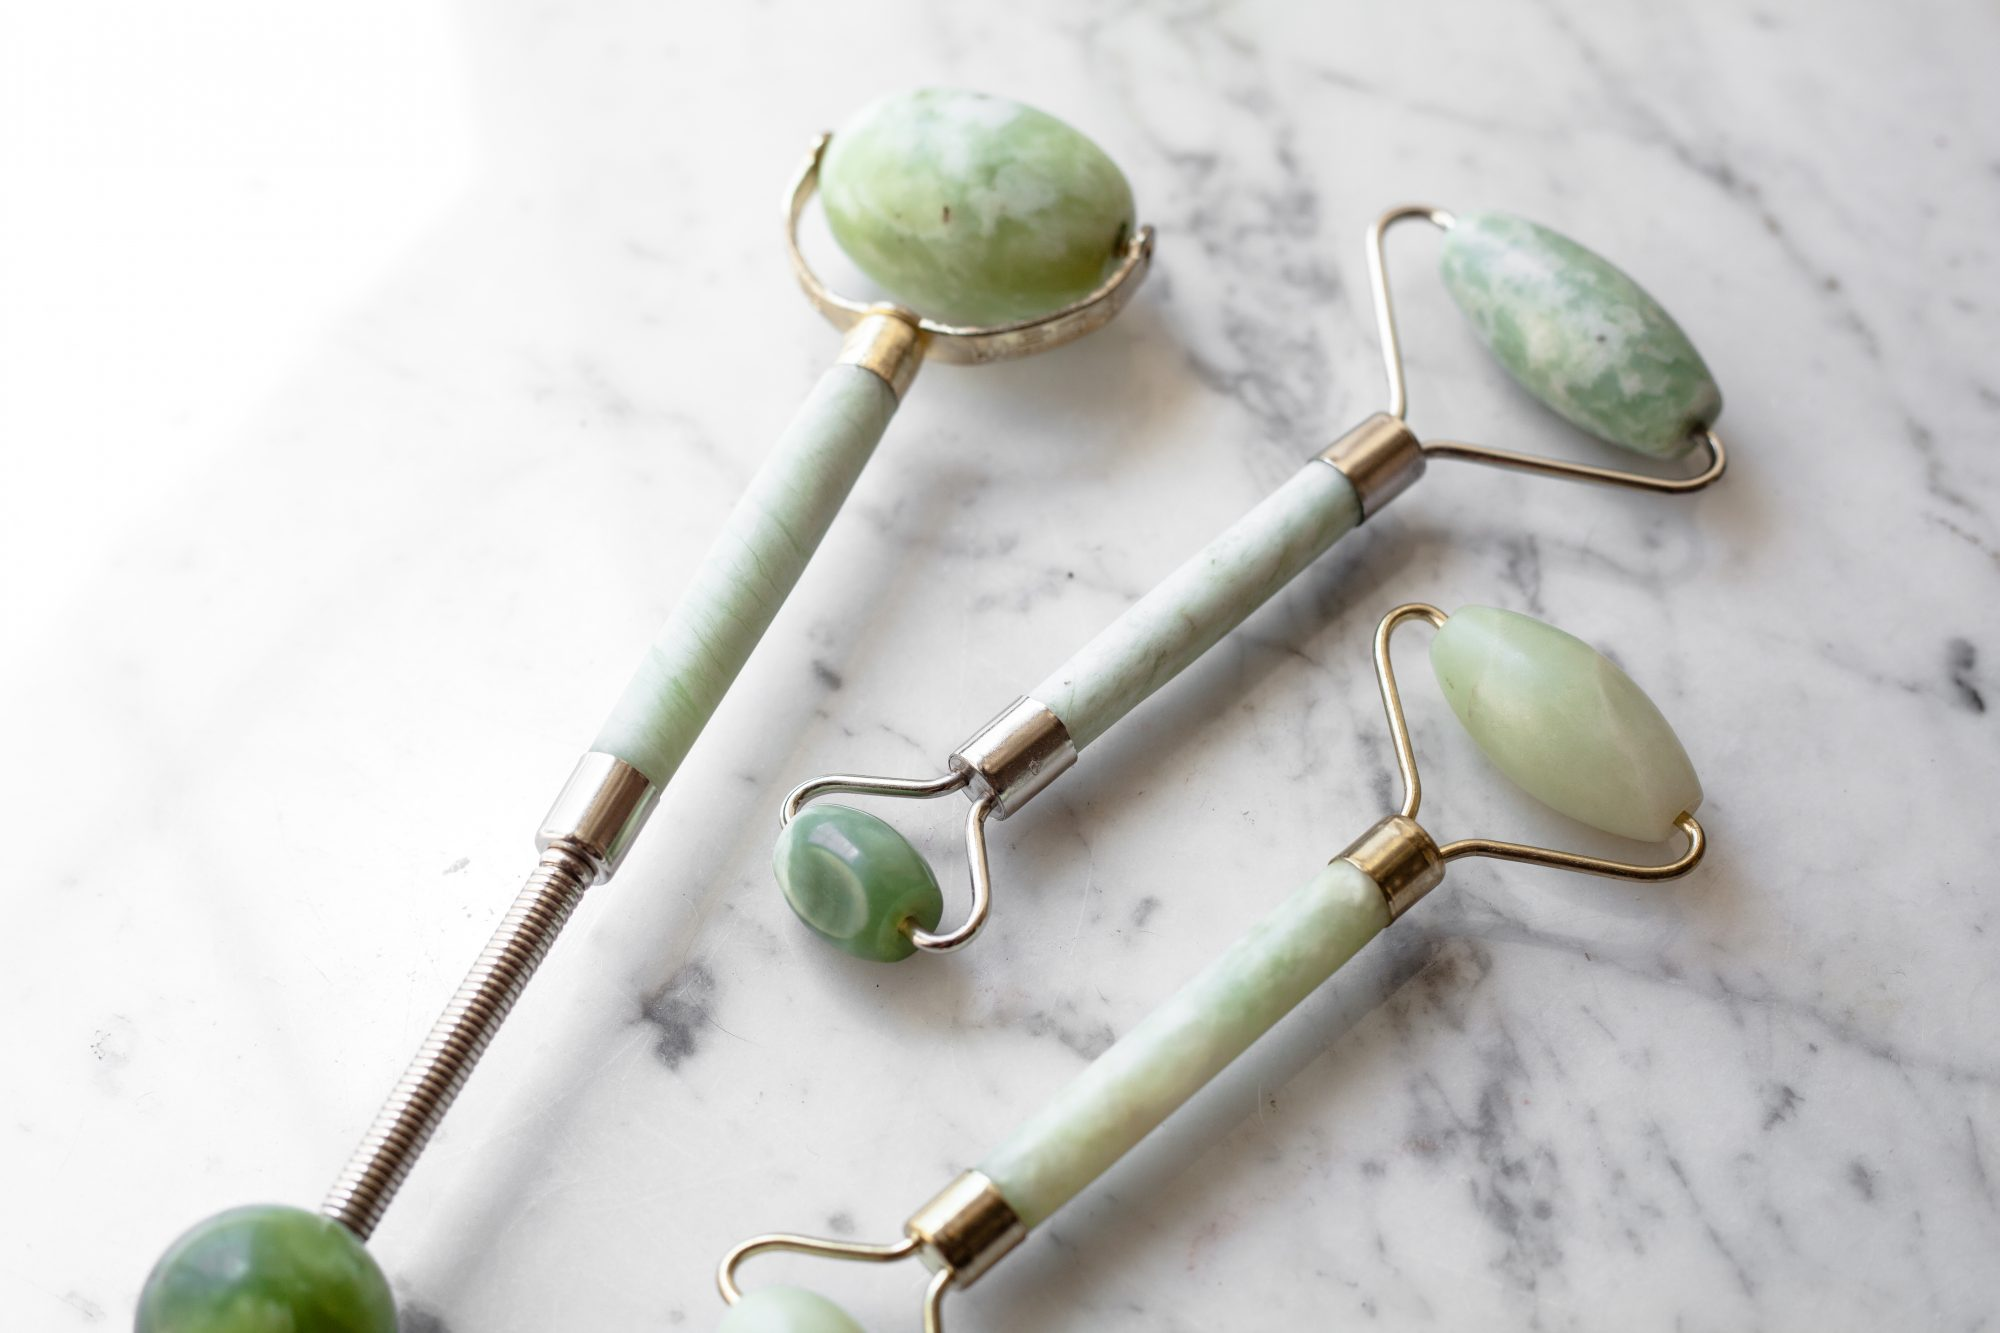 Lifestyle Blog Instagram Is Your Jade Roller Fake The Truth About The Instagram